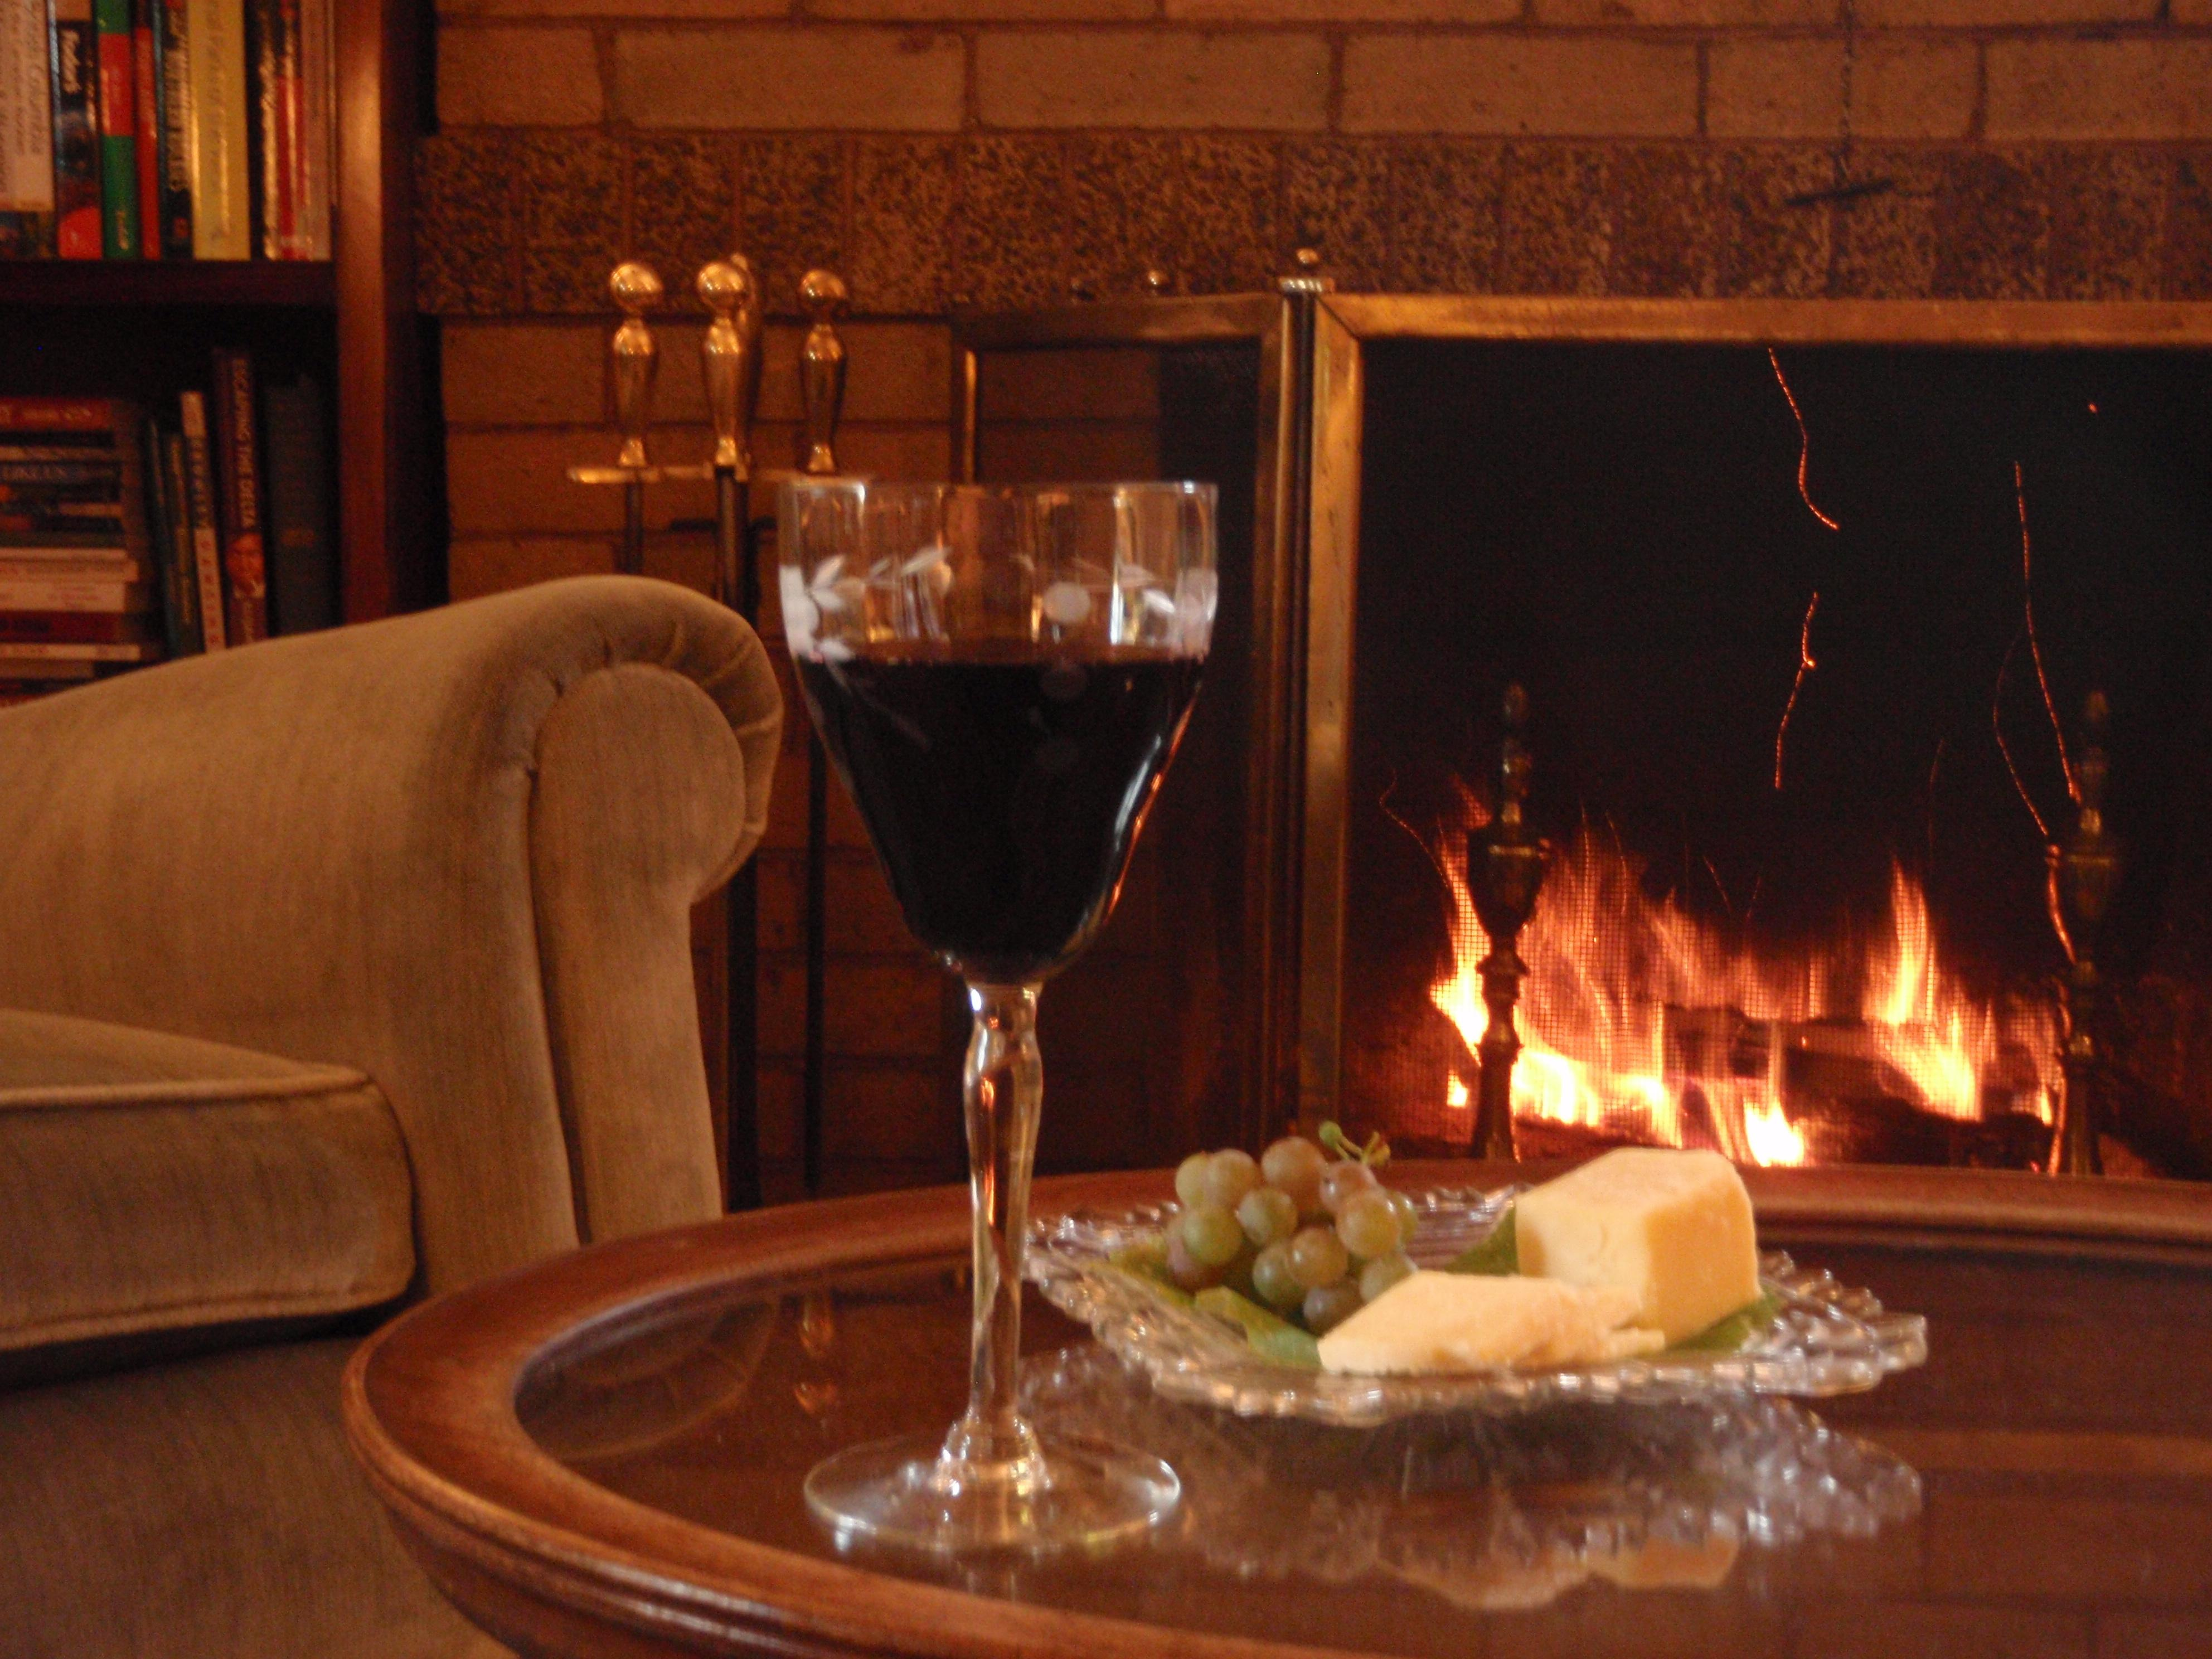 Enjoy complimentary afternoon hors d'oeuvres and beverages by a crackling fire.